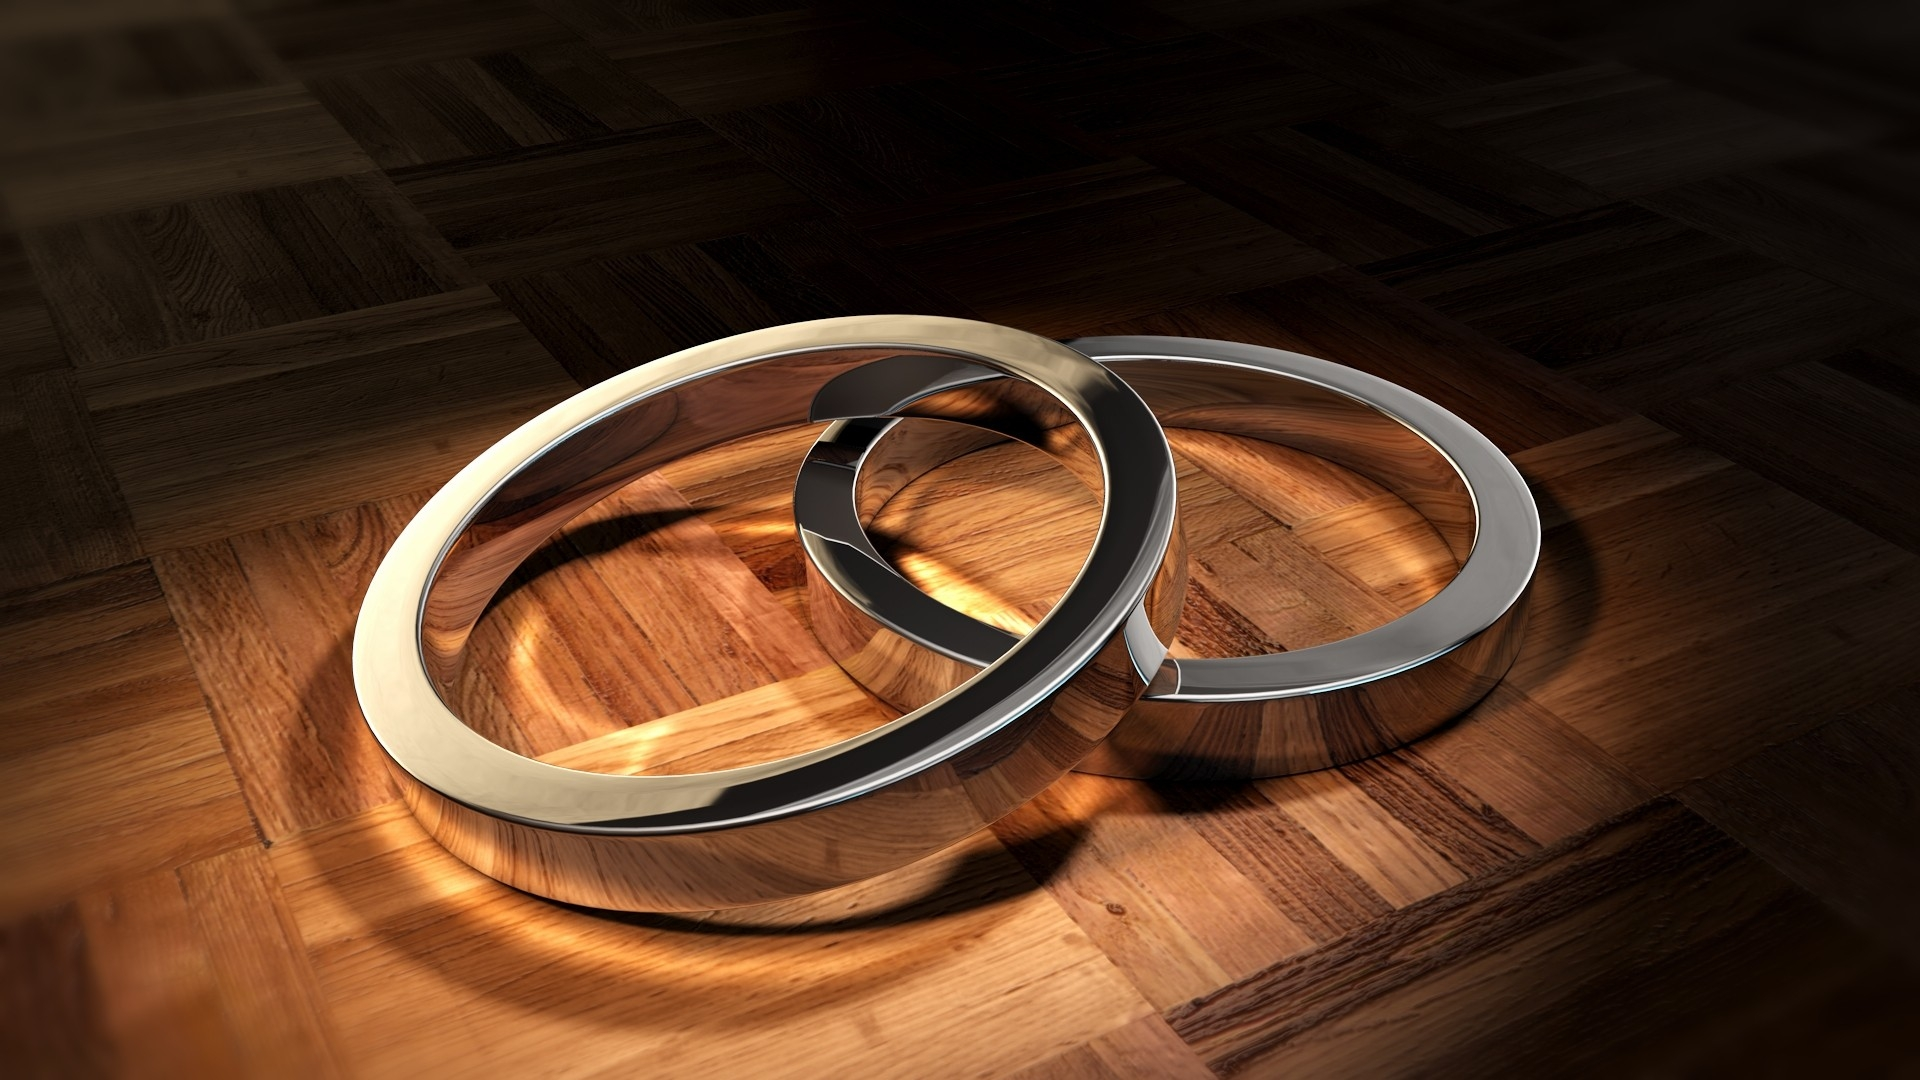 download wallpaper 1920x1080 rings, form, couple, metal, surface